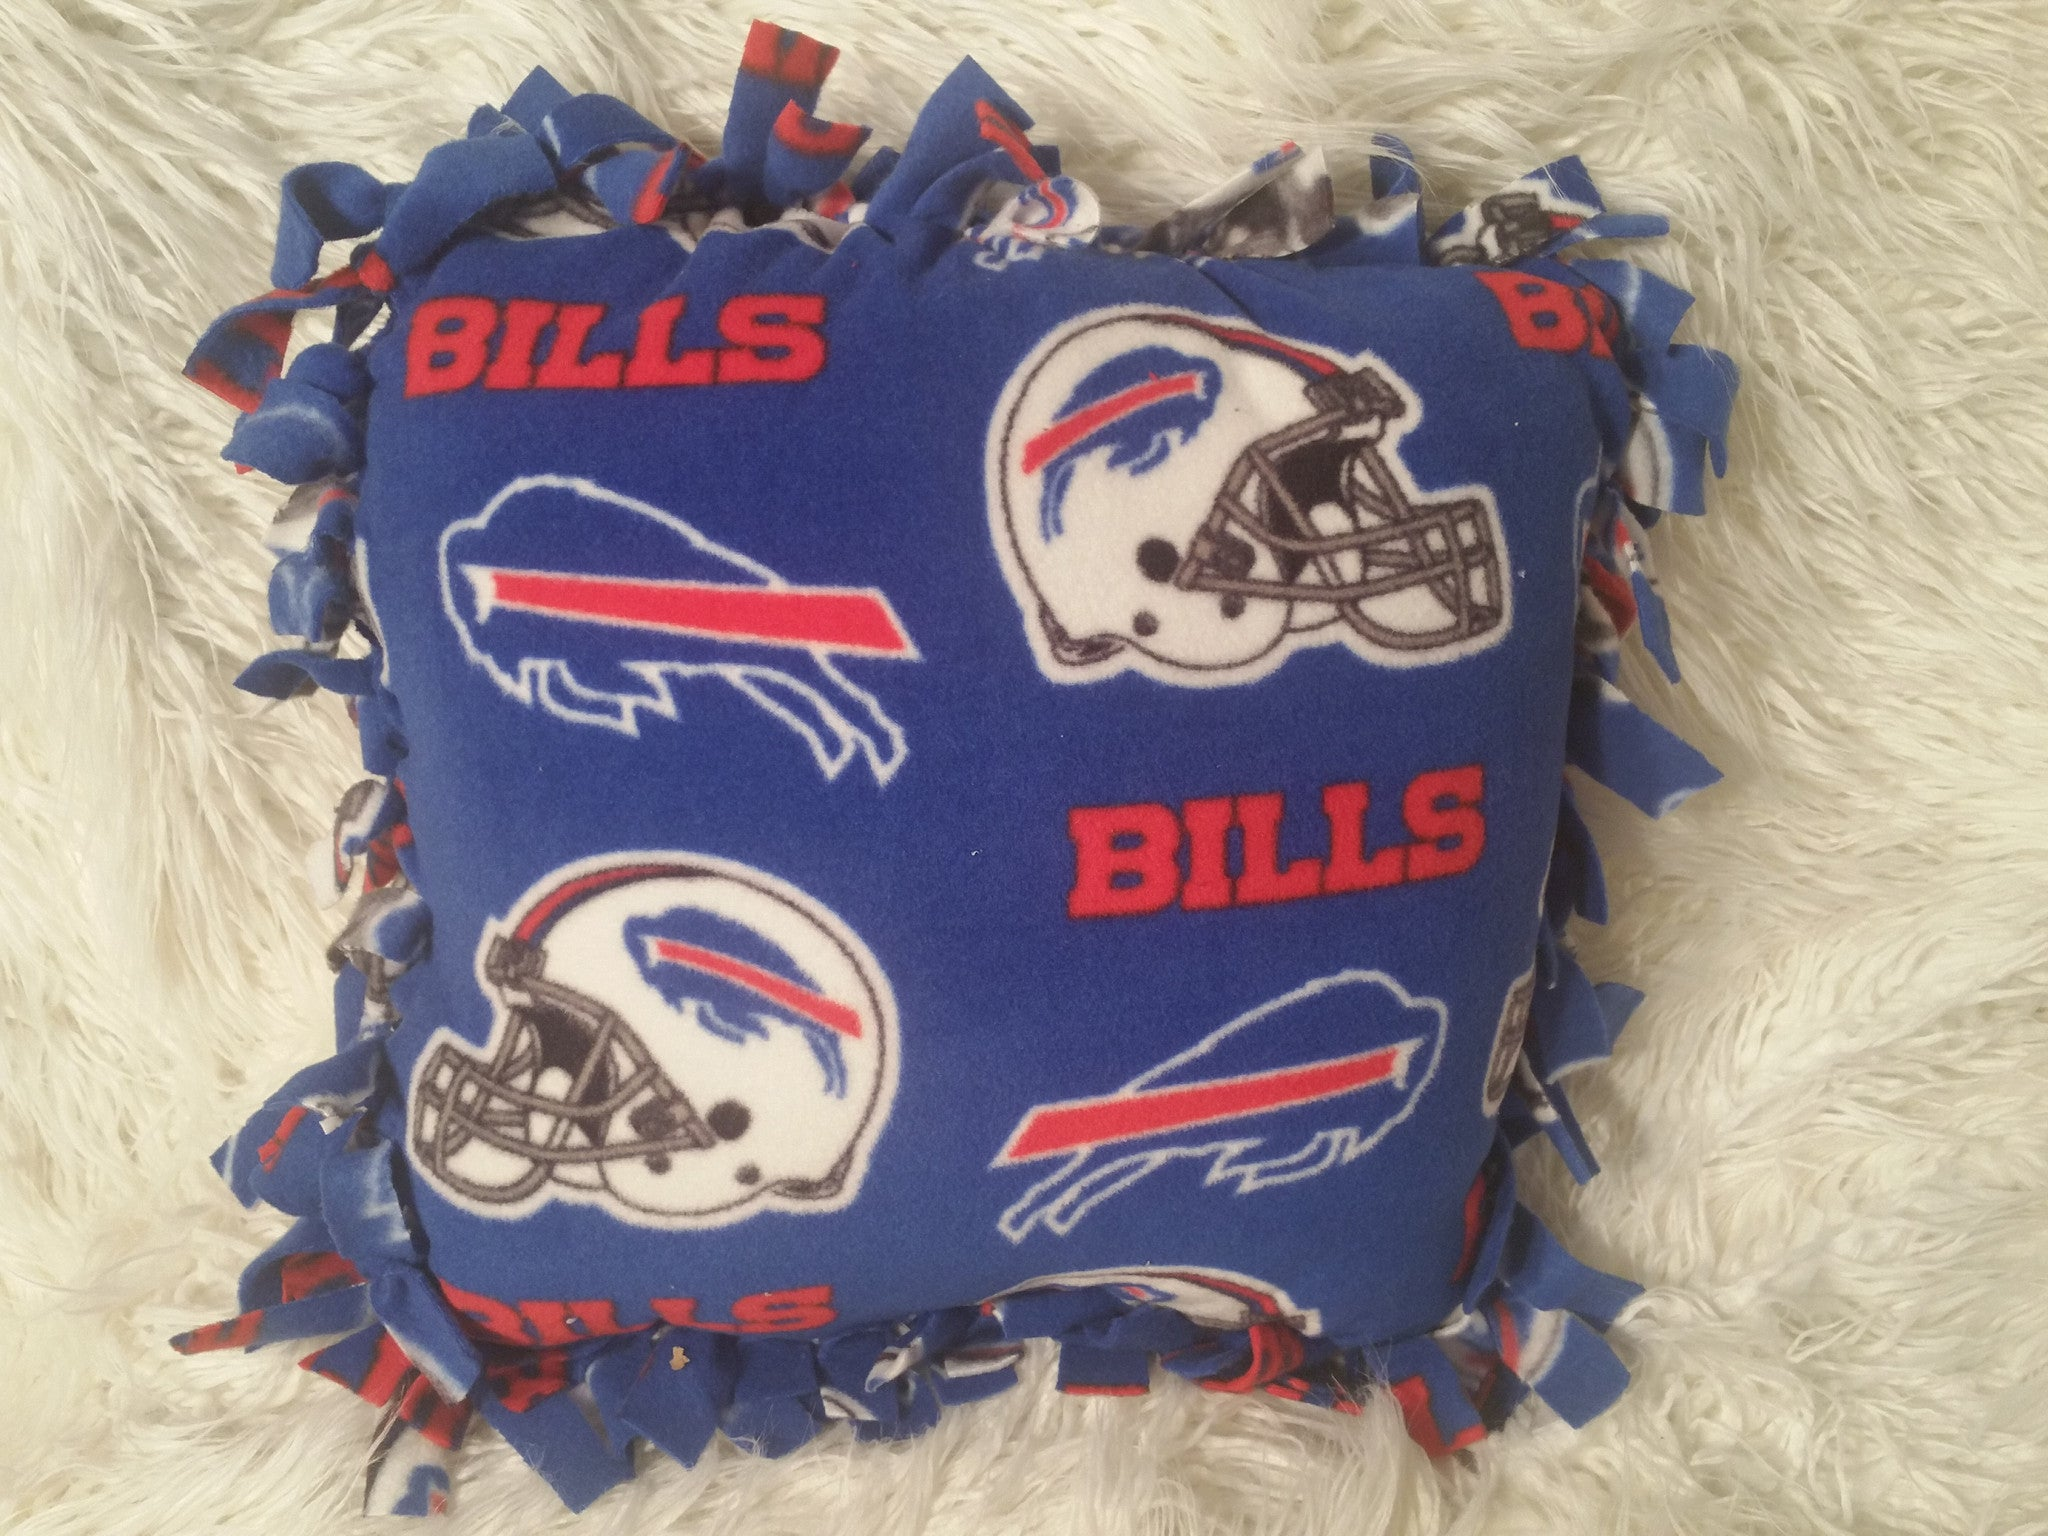 Handmade NFL Fleece Pillows with Fringe - IBL Fashion - 17